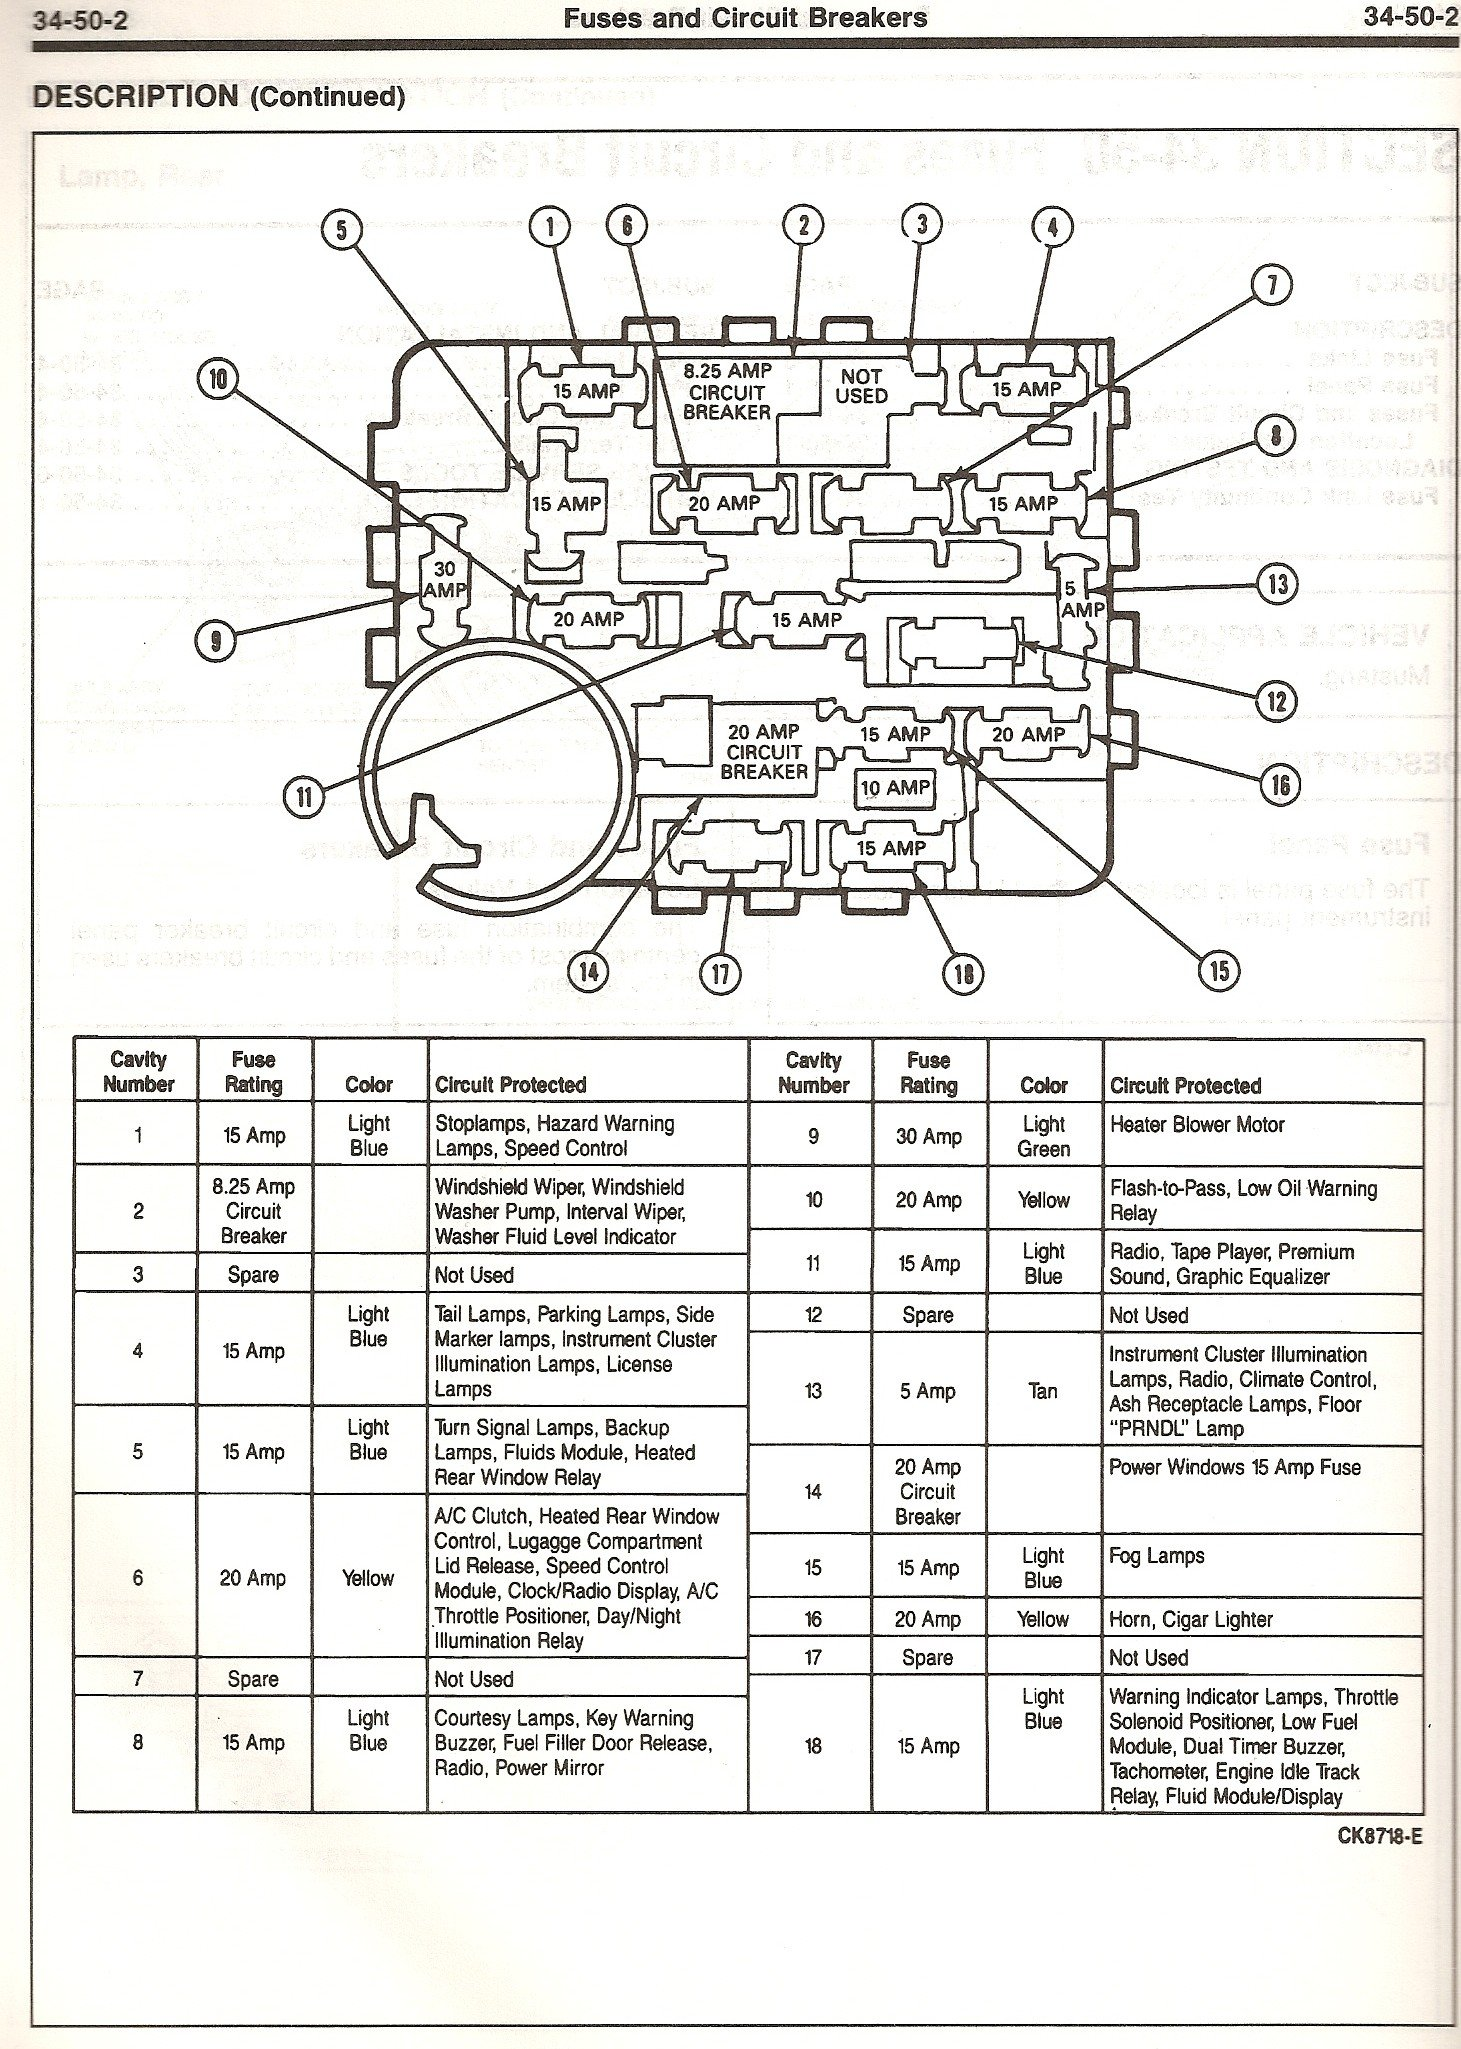 Gmc Envoy Parts Diagram 2002 Washer Electrical Wiring 1990 2 3 Mustang Missing Fuse Panel Ford Slt Engine